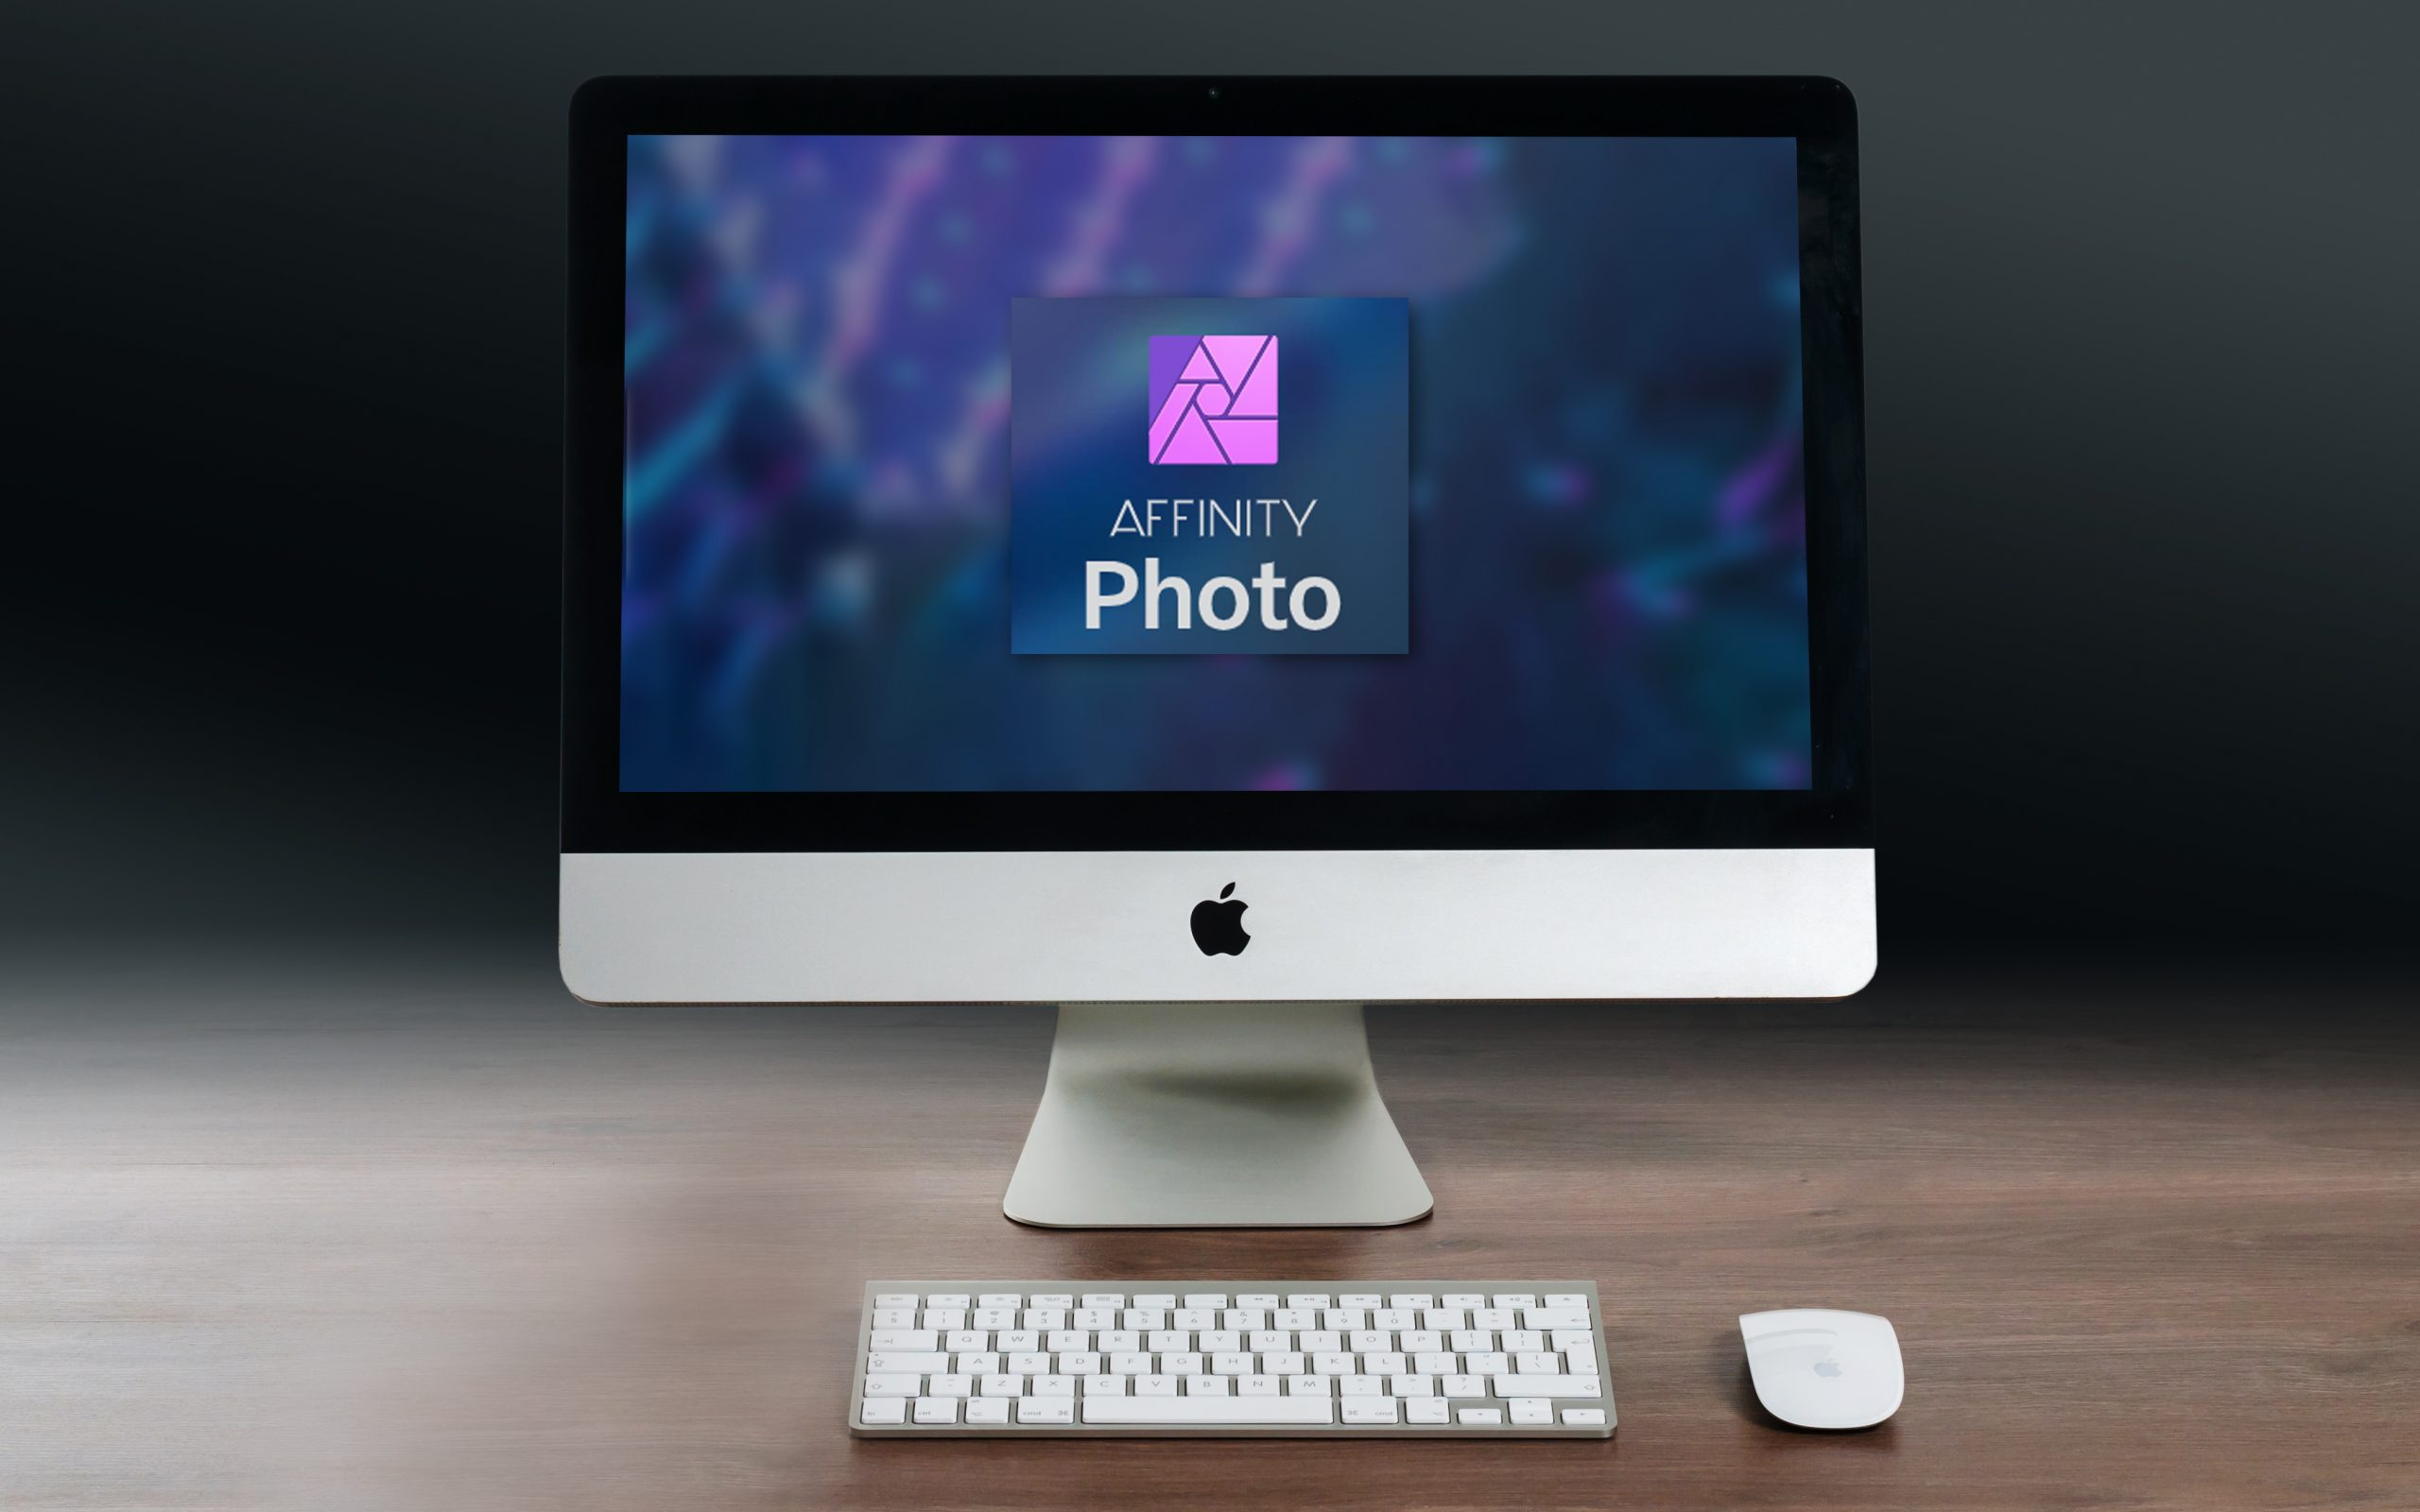 Getting To Know Affinity Photo Stratford-upon-Avon